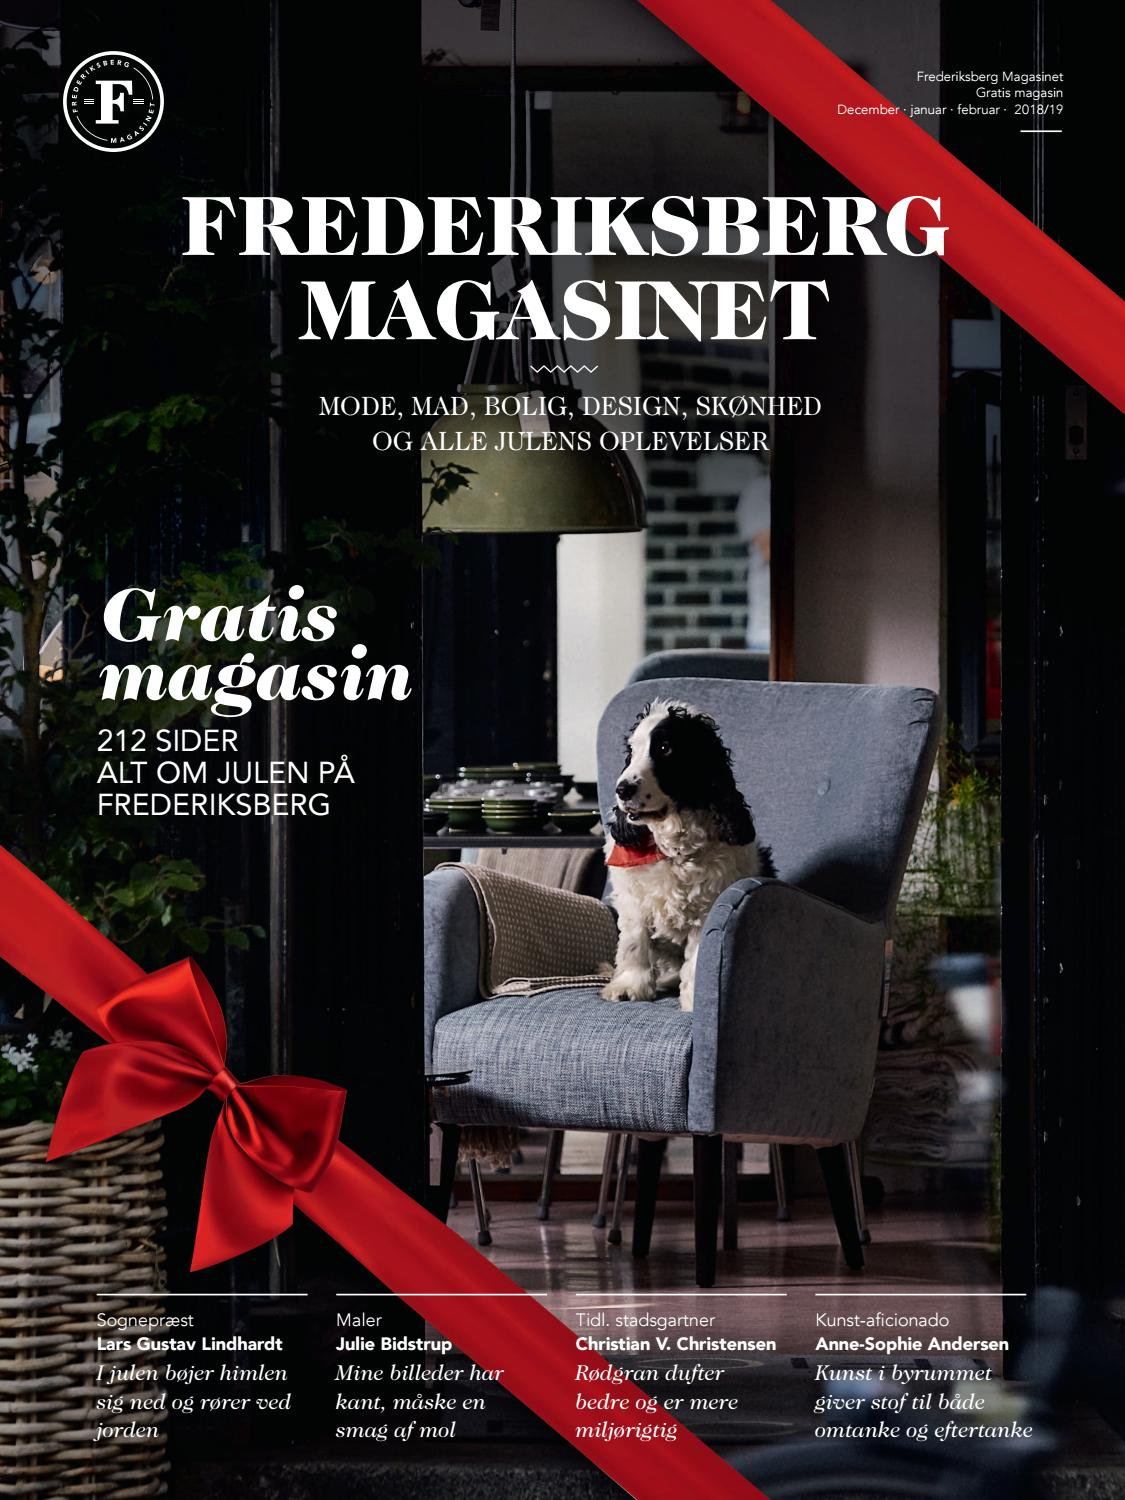 ac7df62dccf3 FREDERIKSBERG MAGASINET Jul 2018 by FREDERIKSBERG MAGASINET - issuu